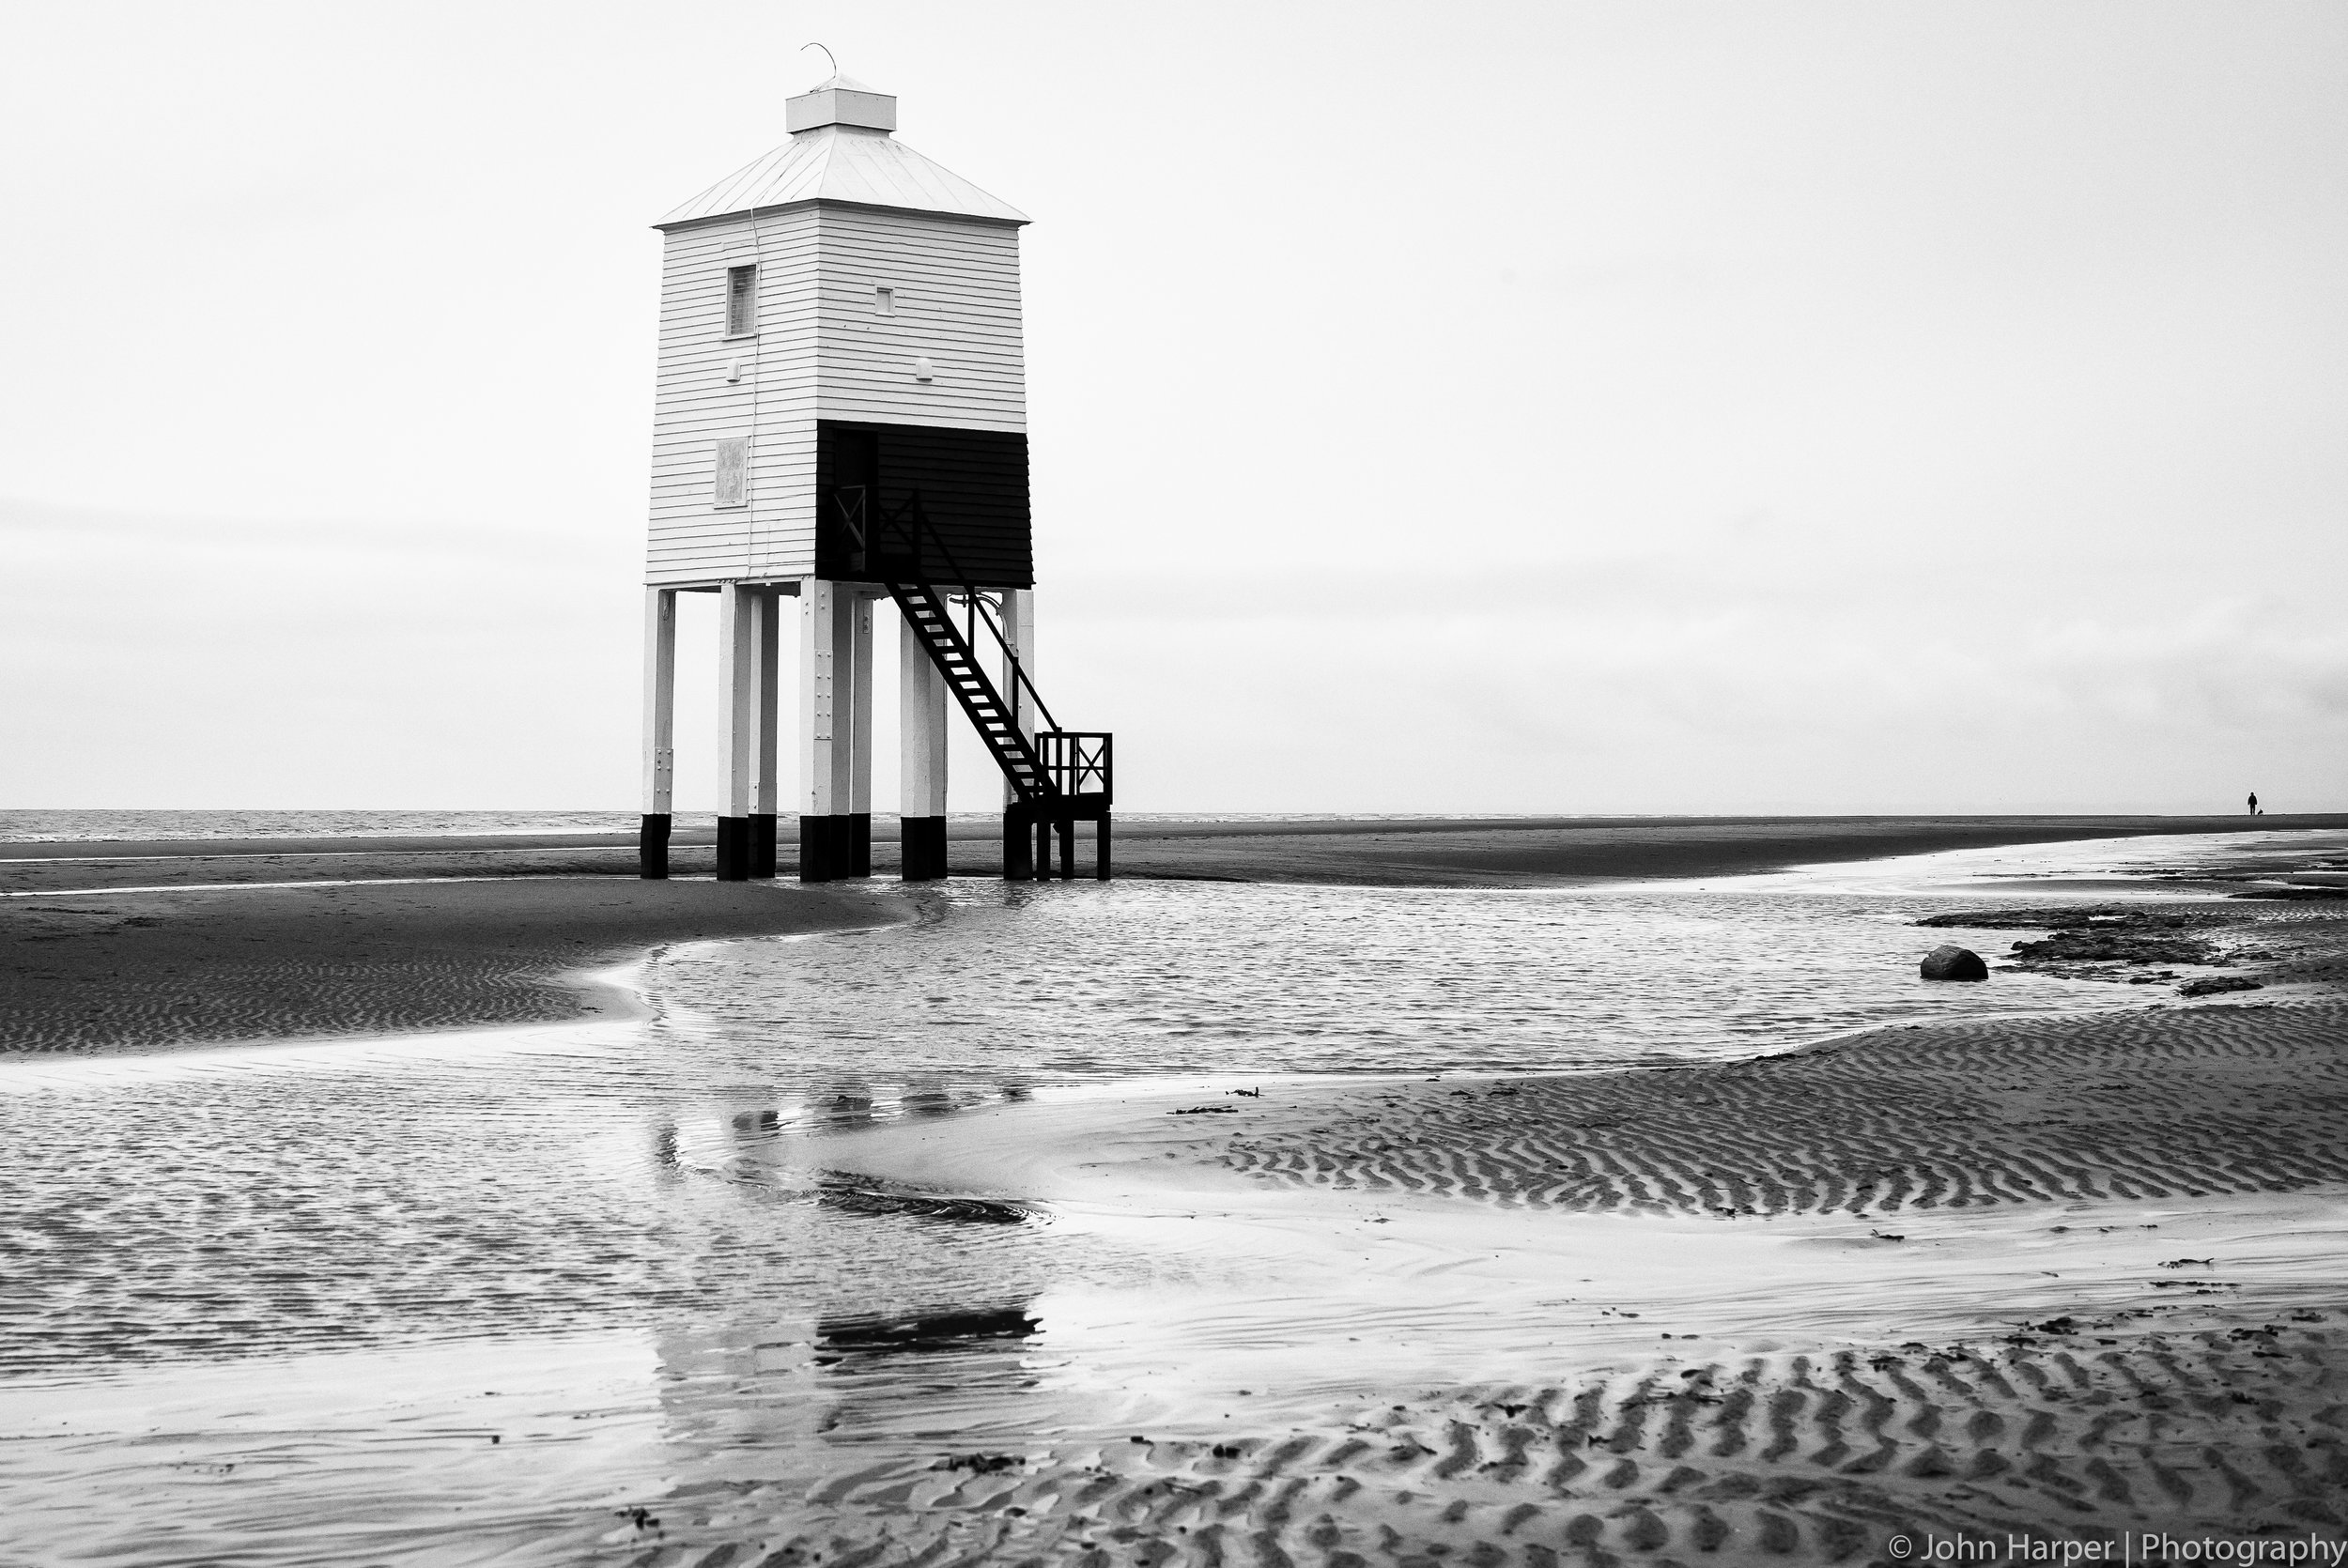 The Low Lighthouse Burnham-on-Sea